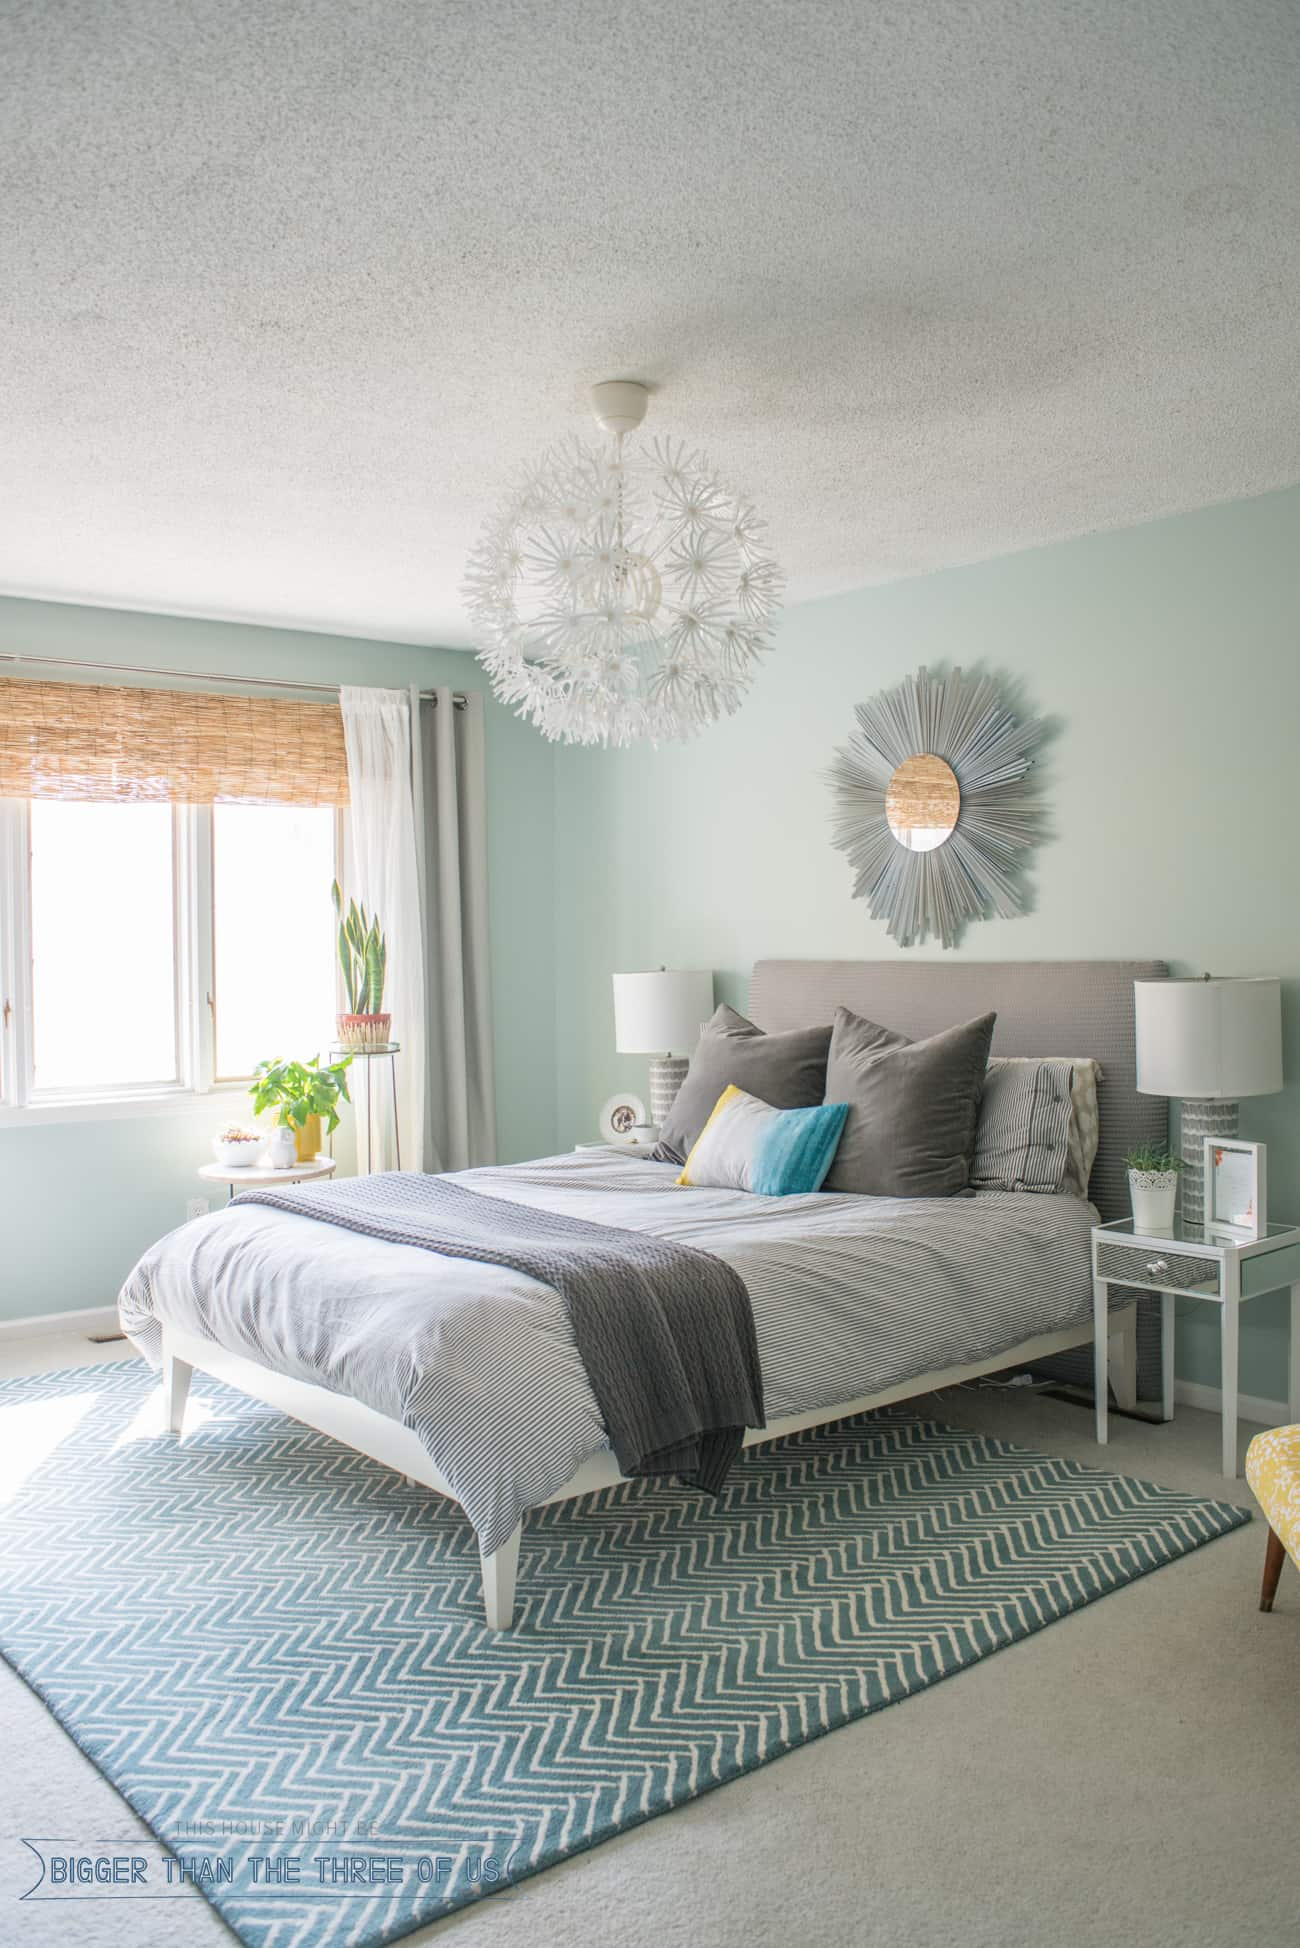 Dreamy Bohemian Bedroom Design - Bigger Than the Three of Us